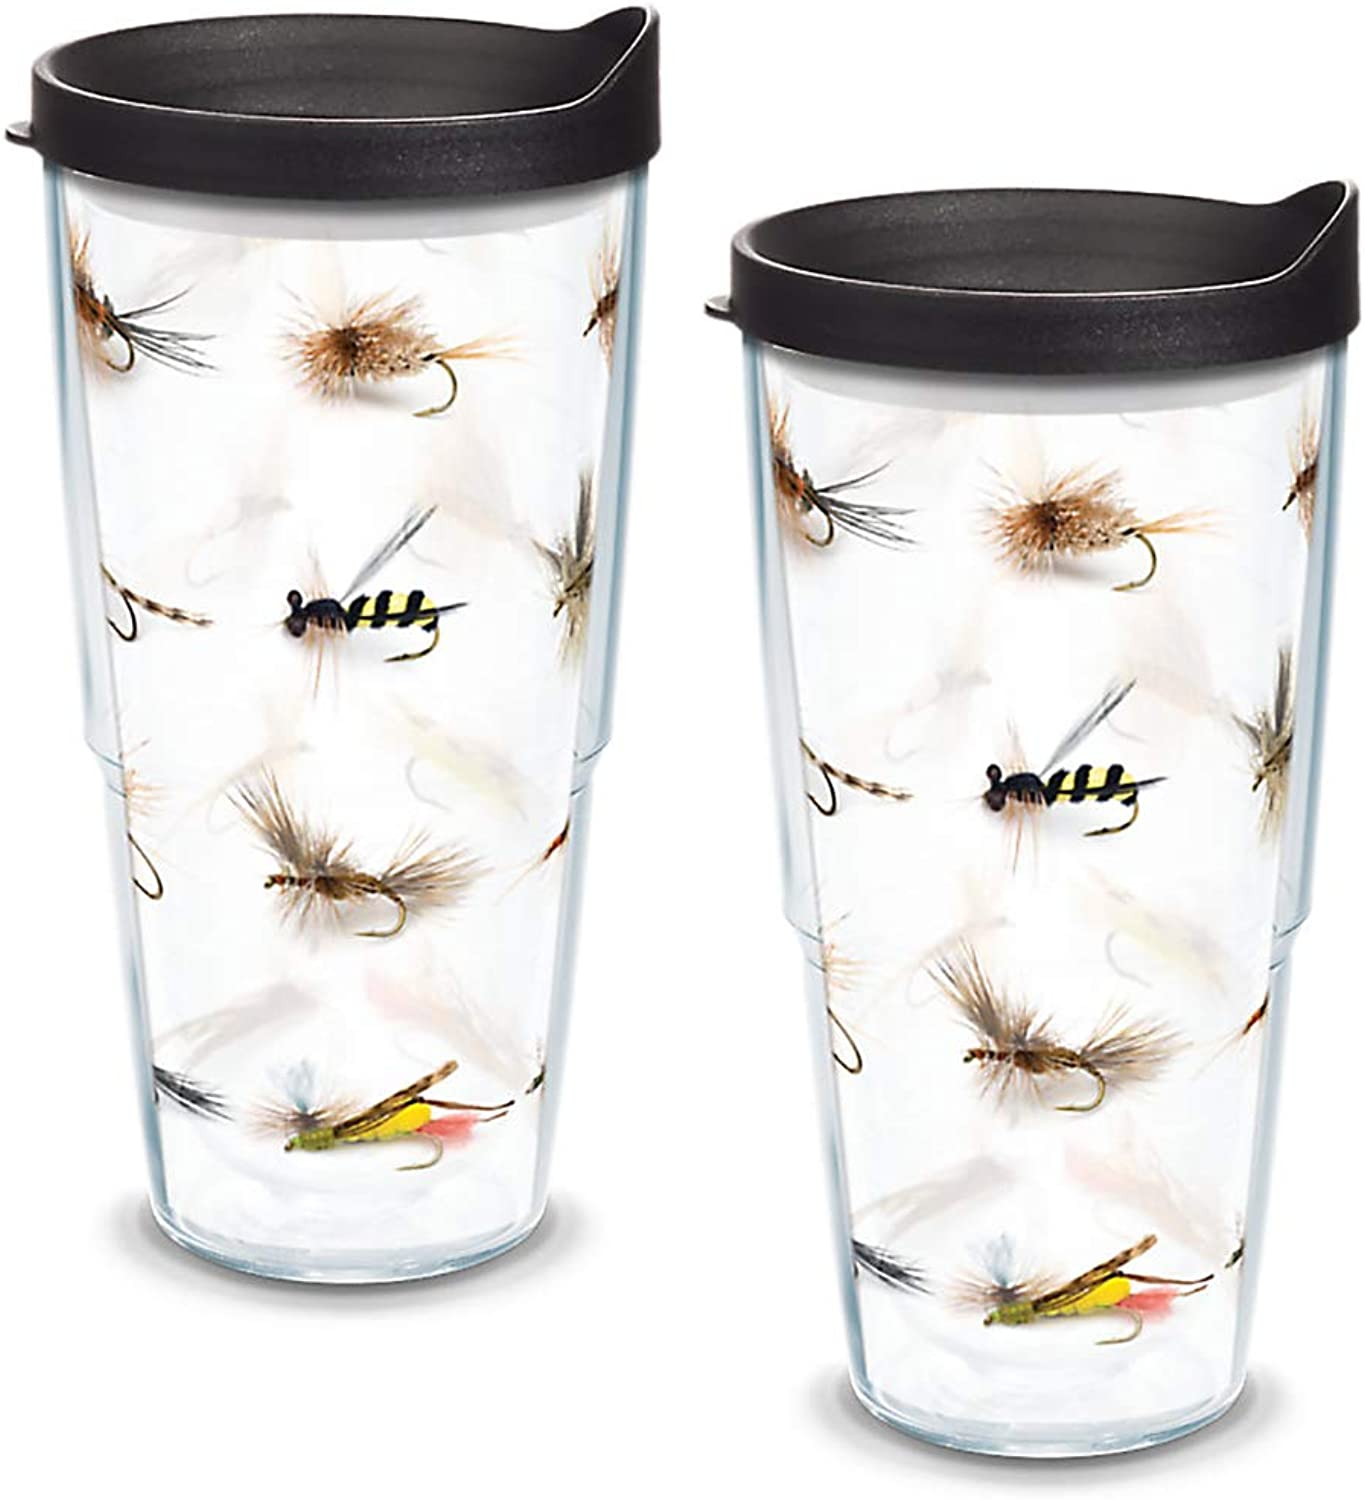 Tervis 1089781 Fish Flies Tumbler with Wrap and Black Lid 2 Pack 24oz, Clear